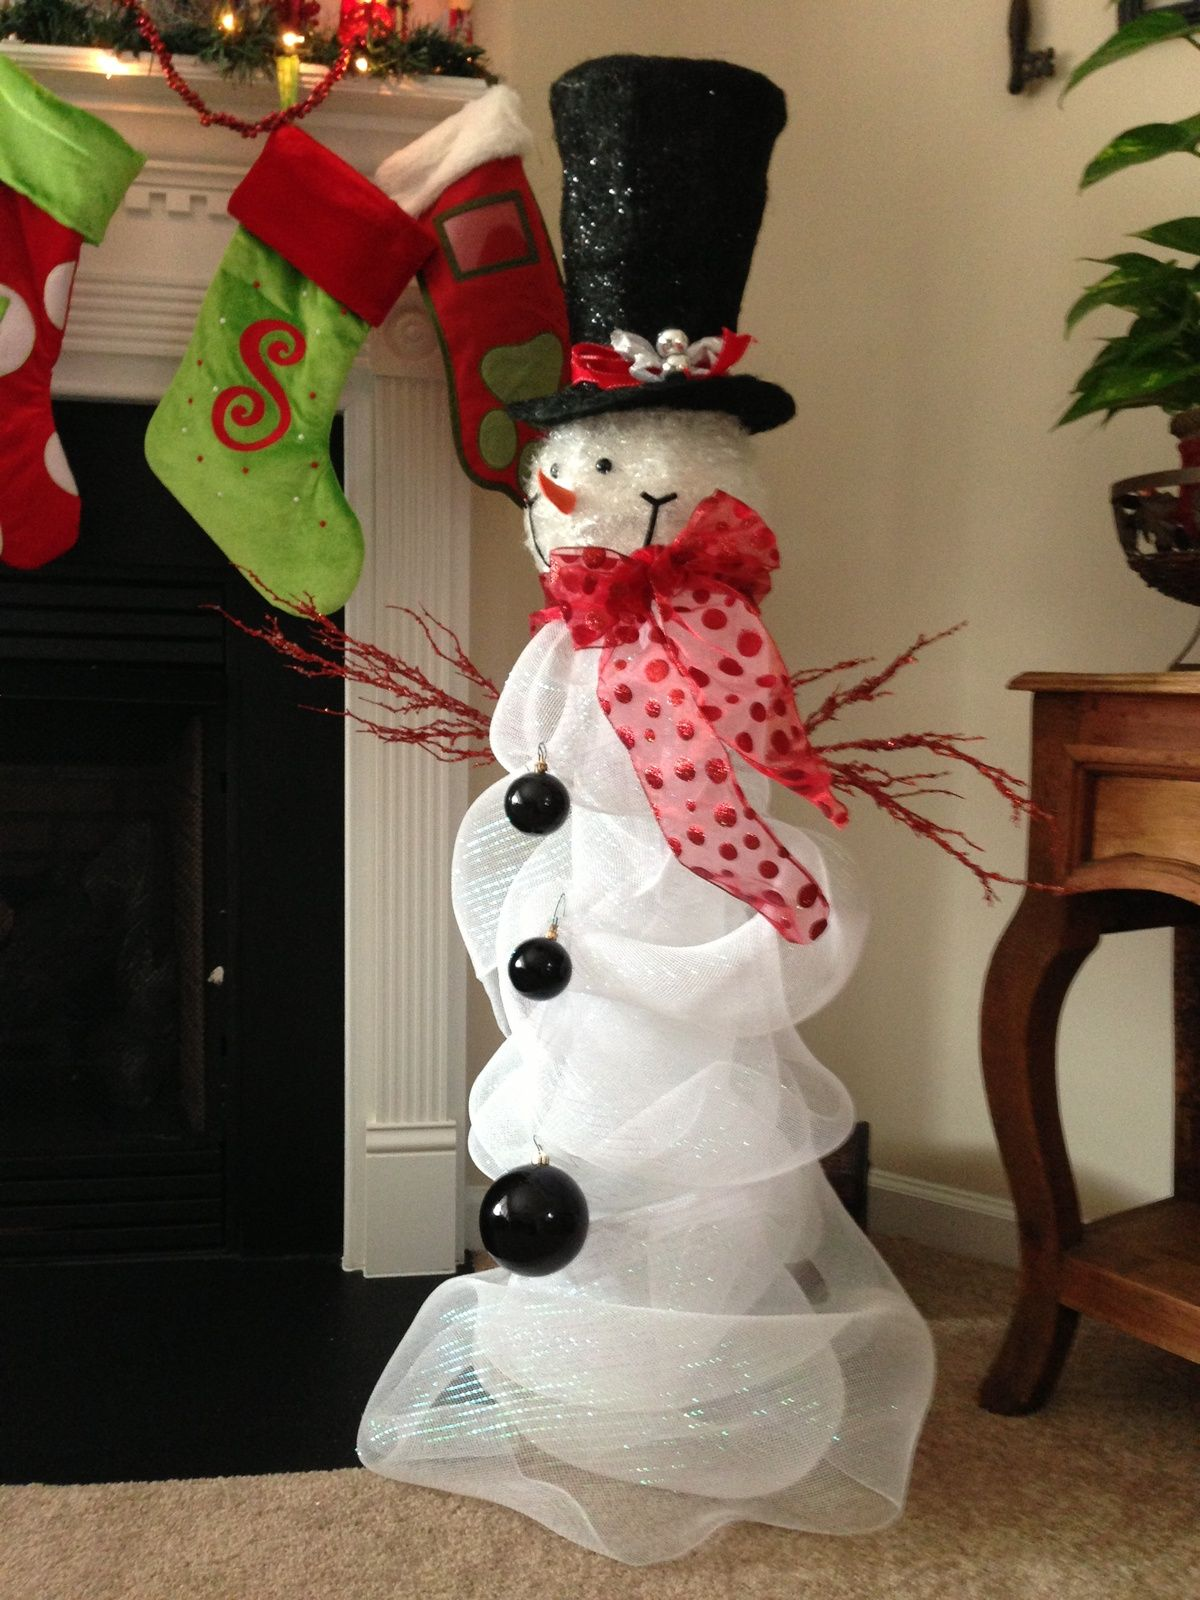 Snowman Tomato Cages Wire Center Christmas Tree Light Wiring Diagram Caroldoey Pin By Alana Carlock On Pinterest Wreaths And Rh Com Cage Deco Mesh